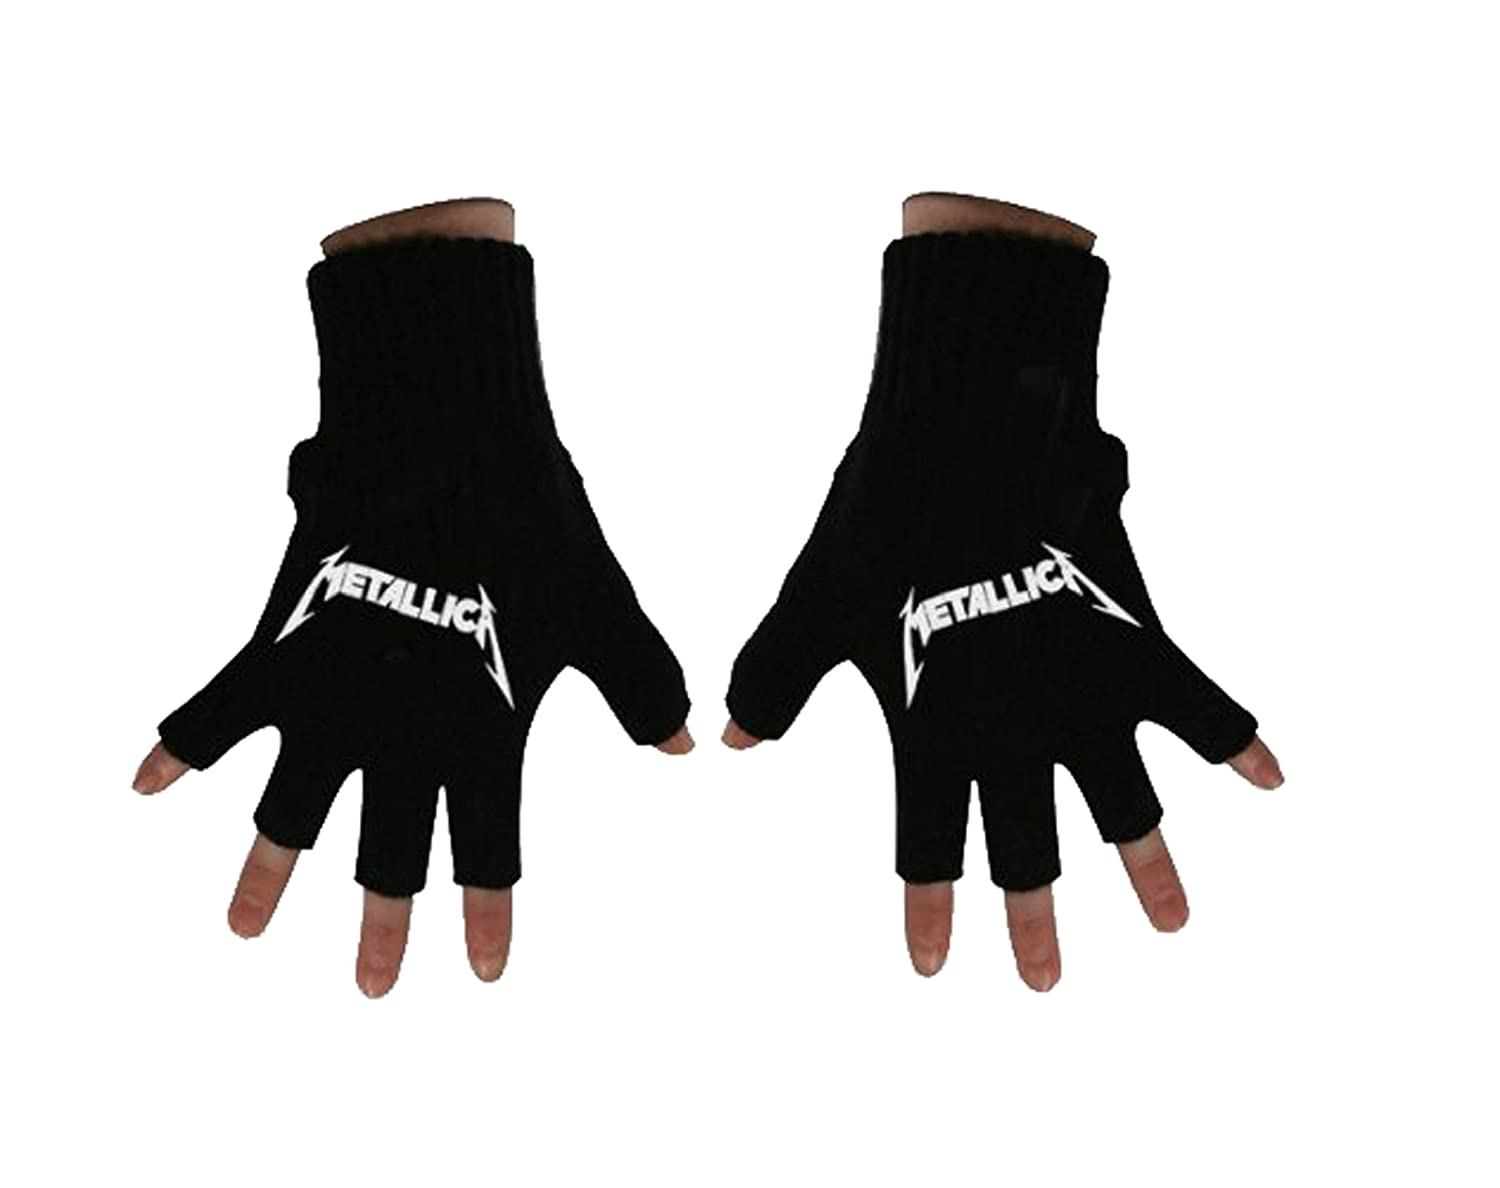 Metallica Gloves Classic Spiked Band Logo New Official Fingerless Black